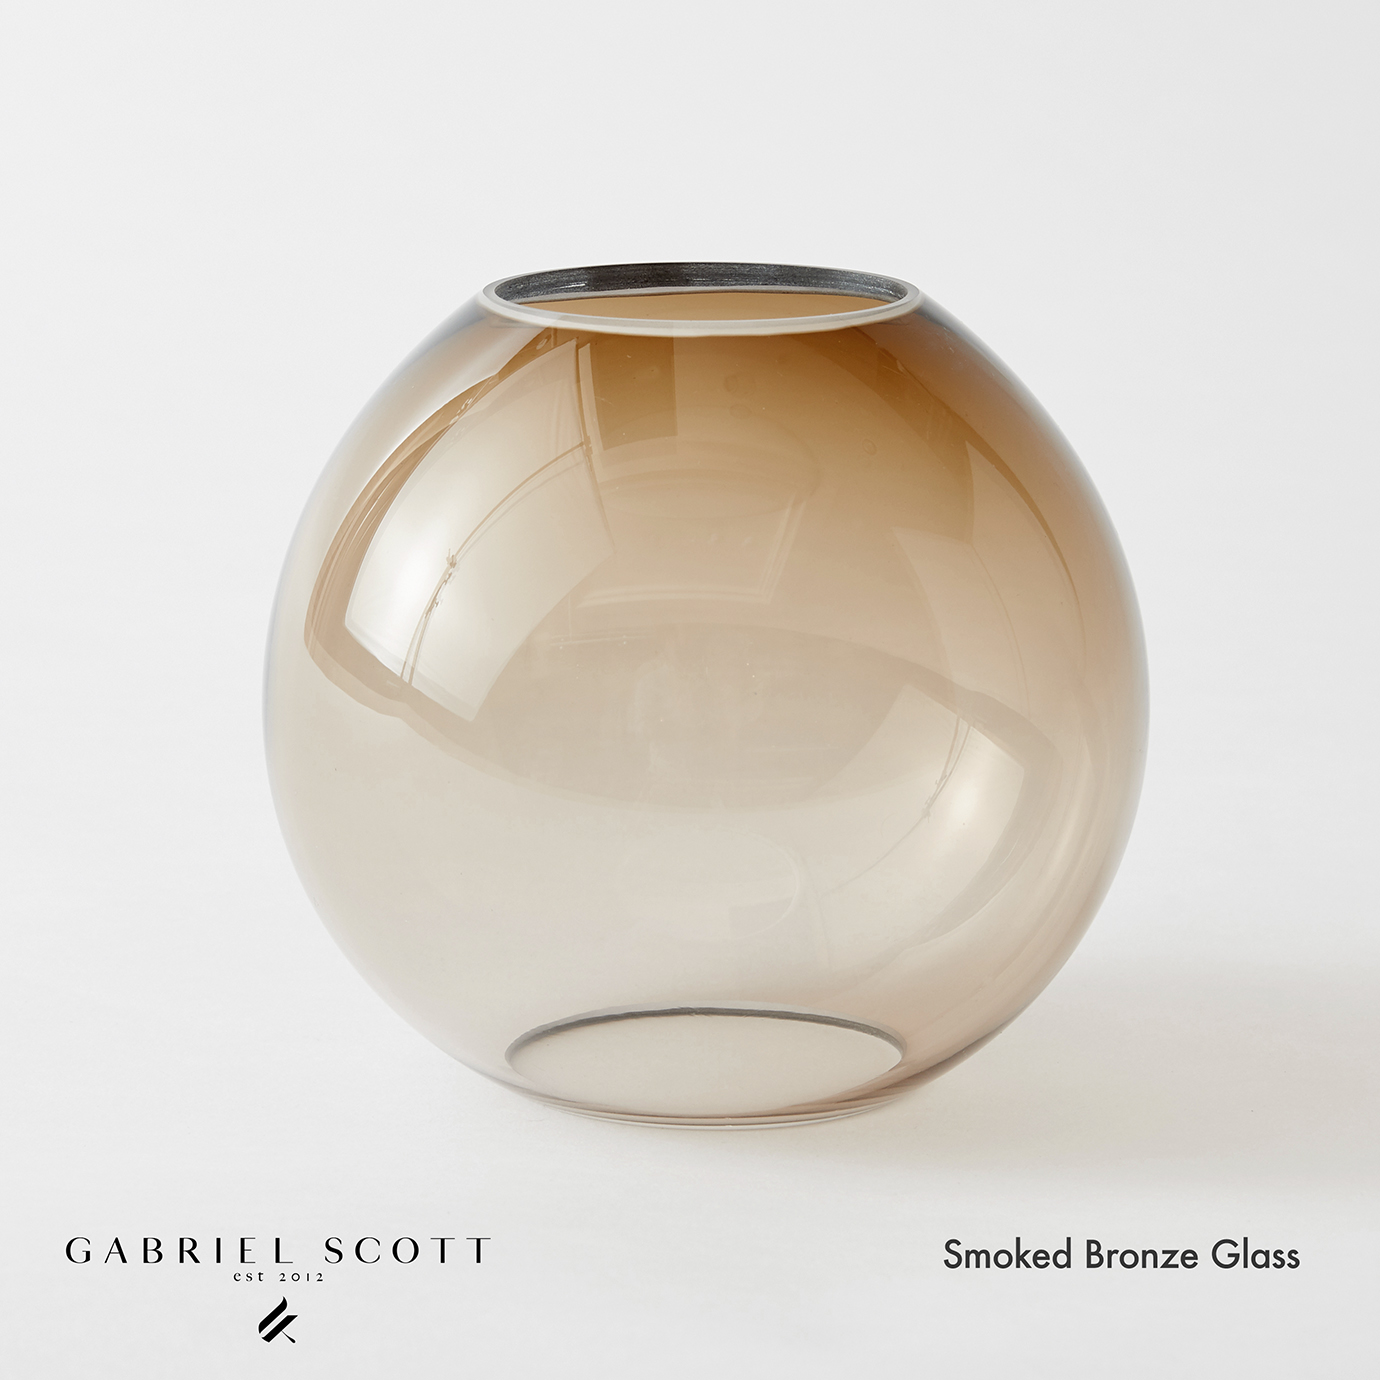 Smoked Bronze Glass - GABRIEL SCOTT.jpg